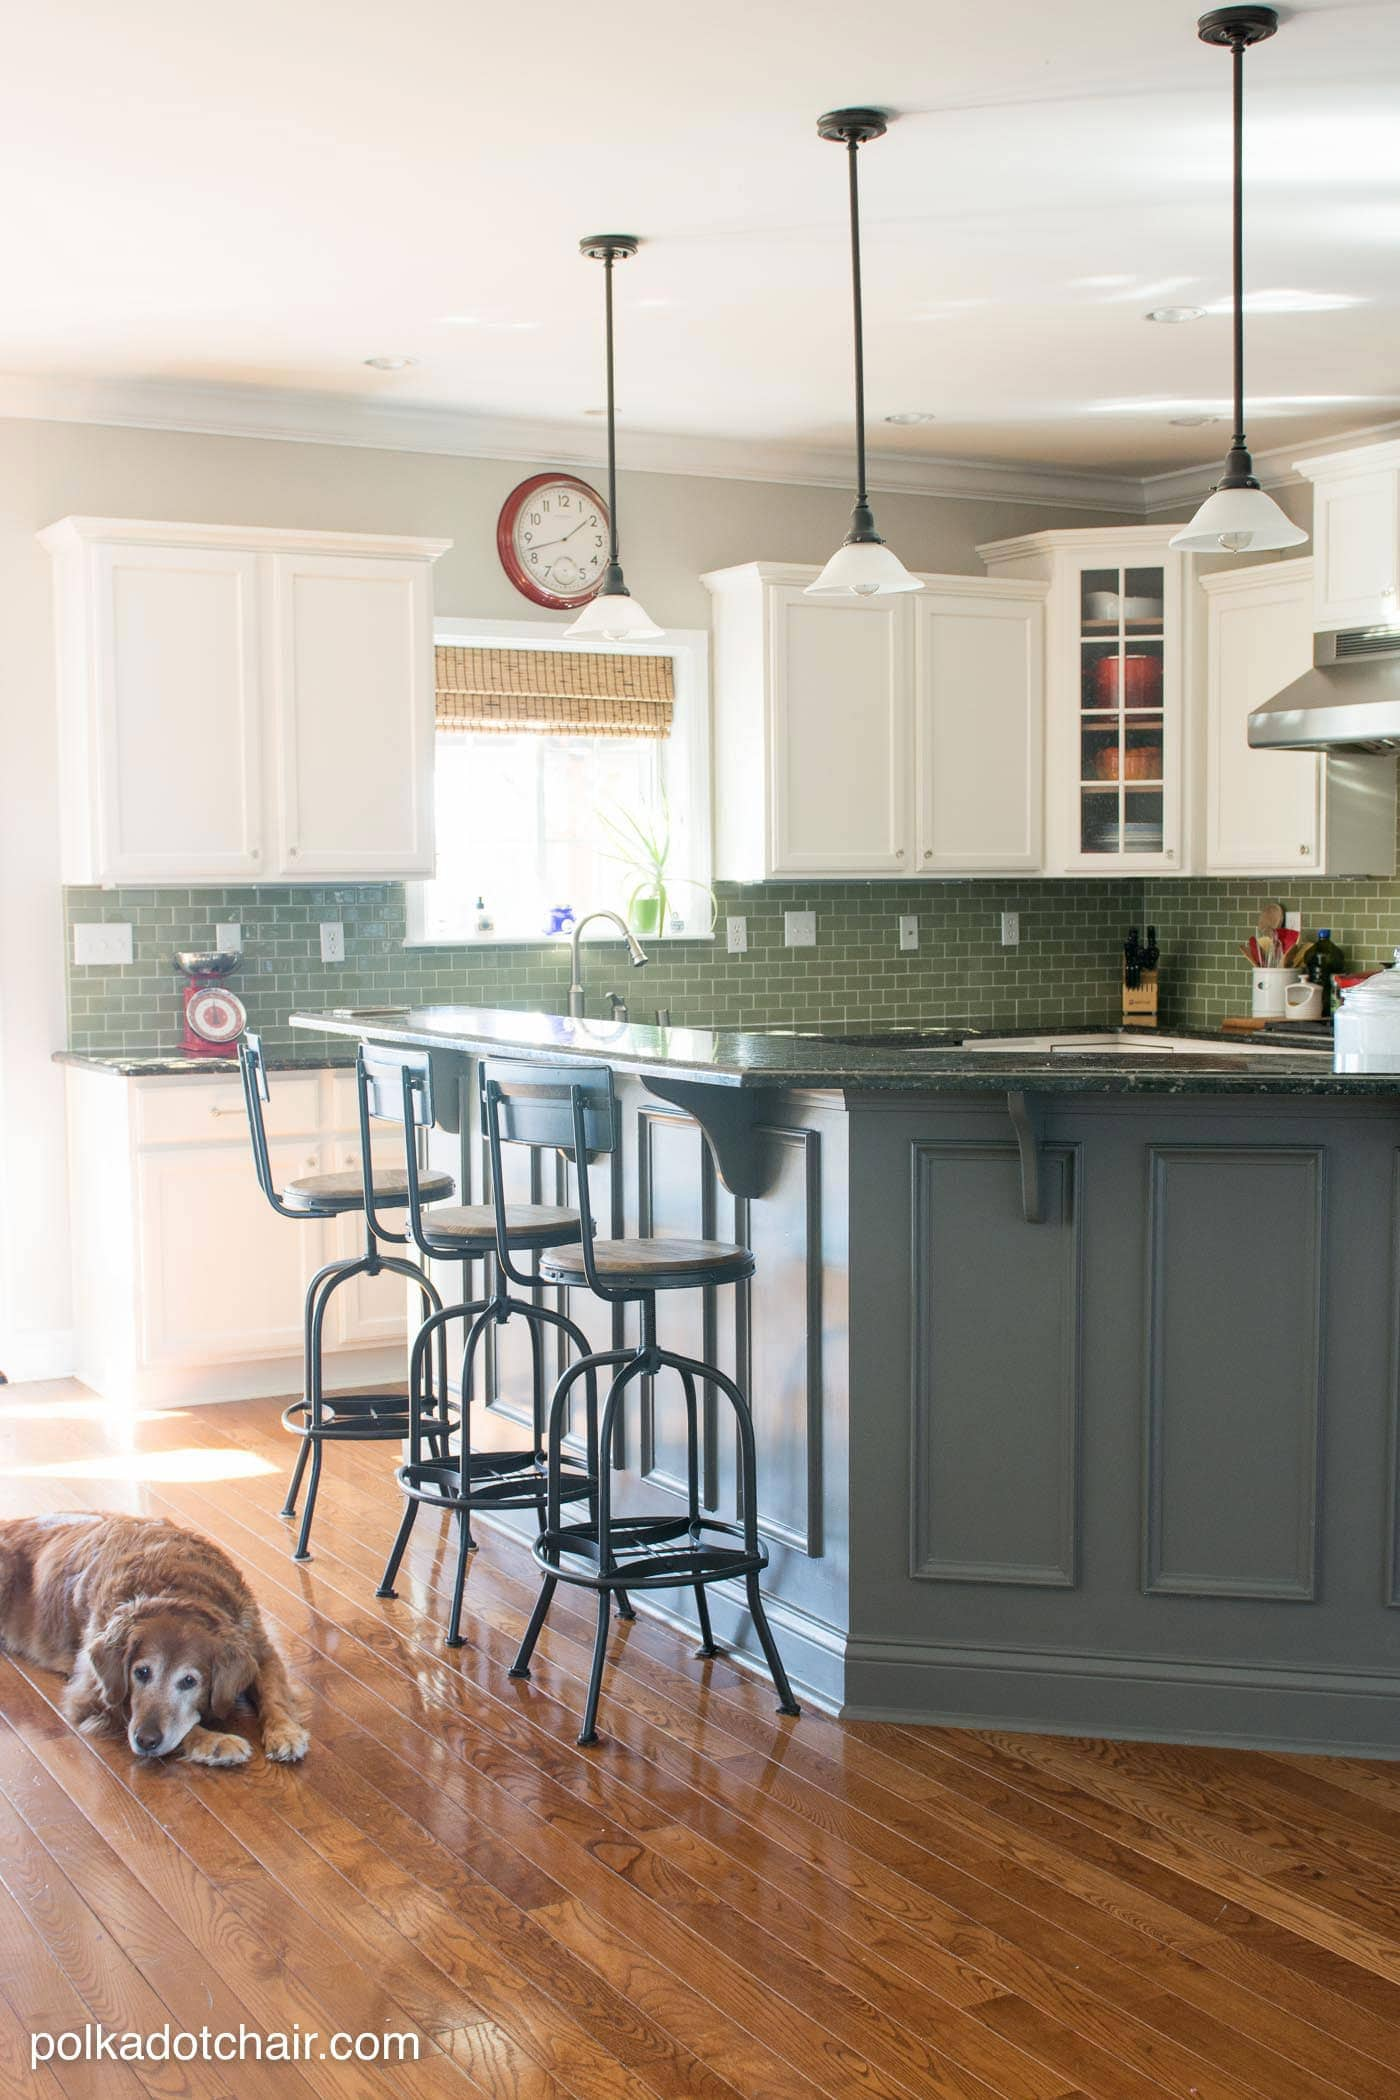 painted kitchen cabinet ideas kitchen makeover reveal kitchen cabinet ideas Before and After Photos of a Kitchen that had it s Cabinets Painted White lots of